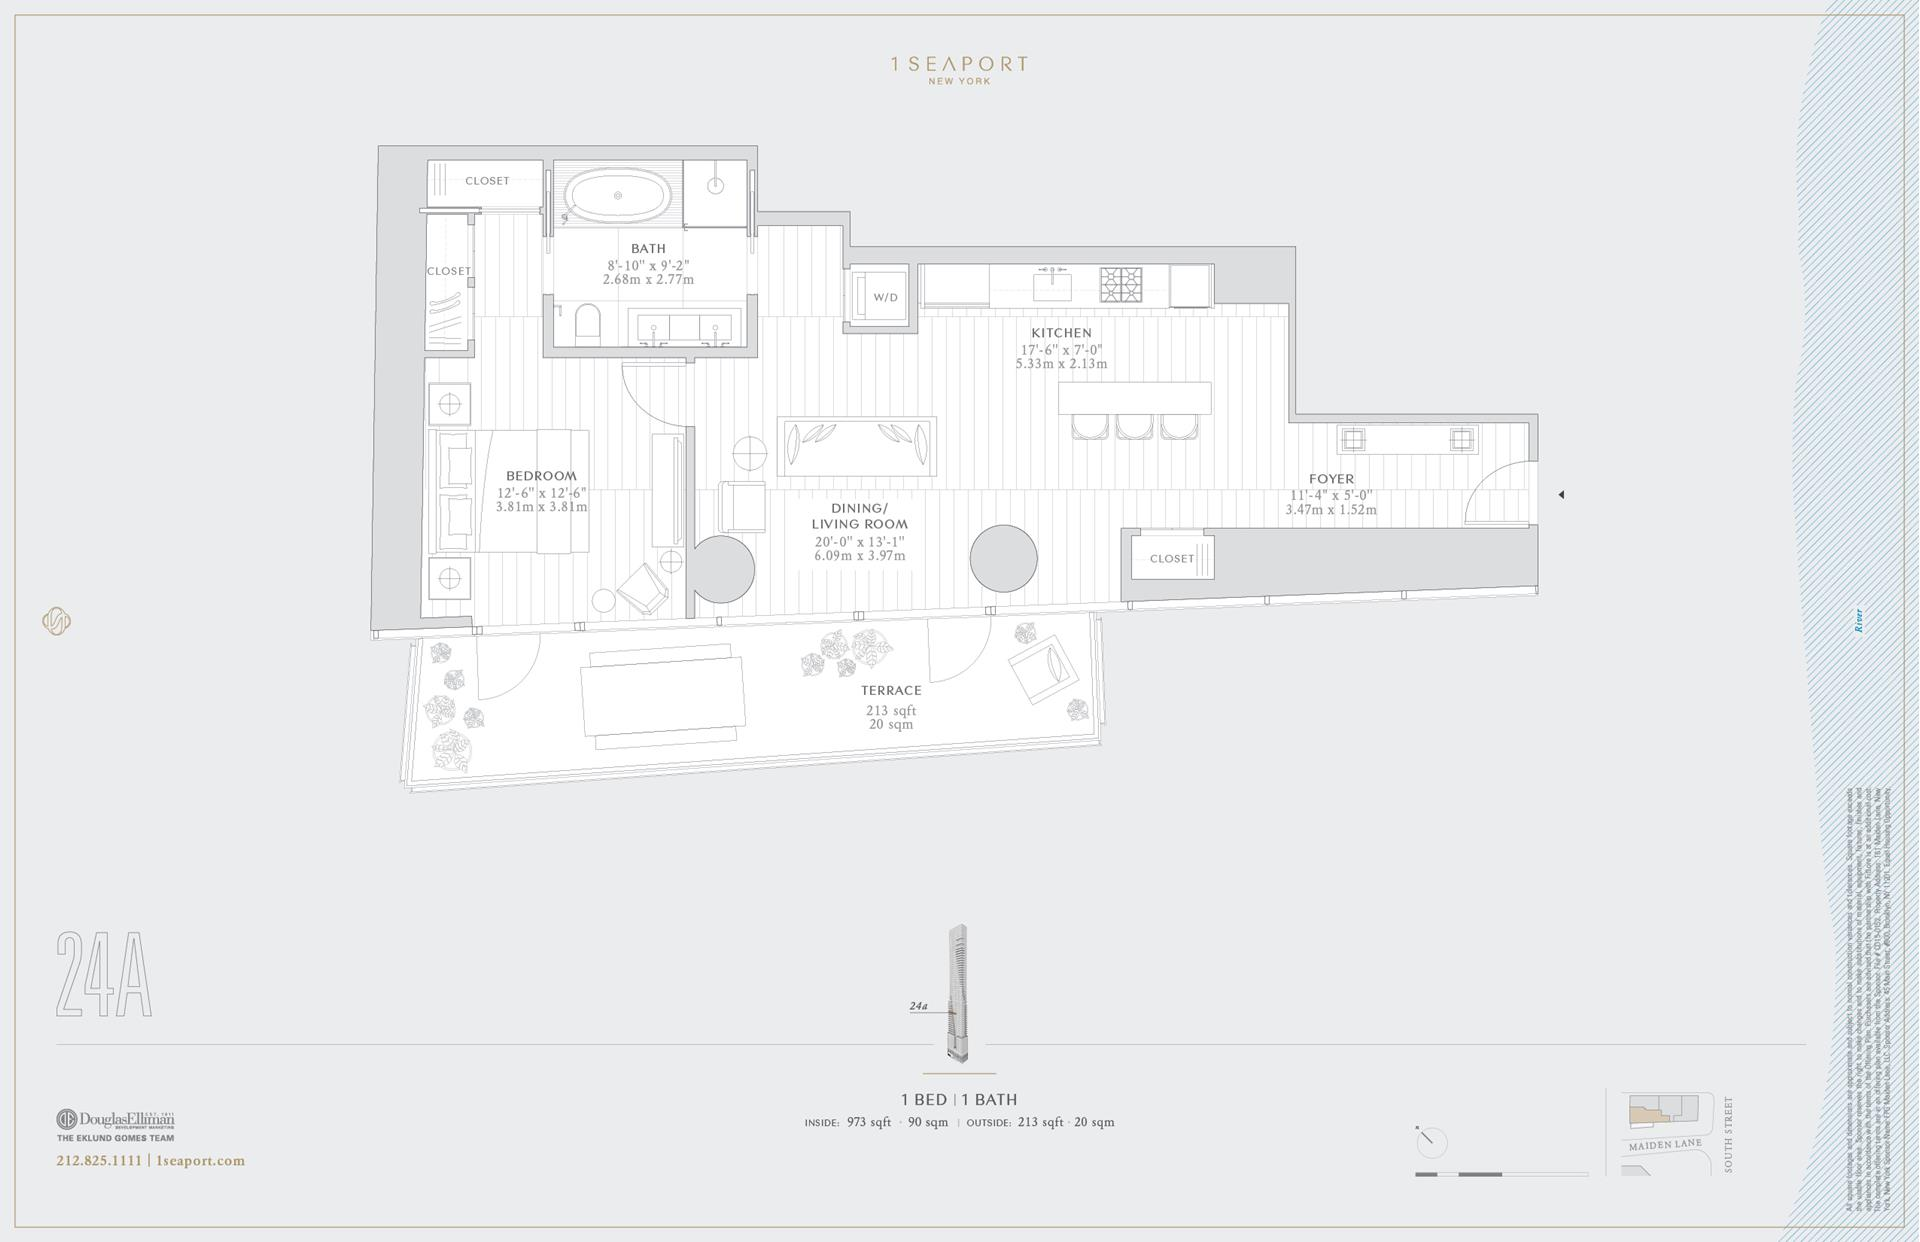 Floor plan of 1 Seaport, 161 Maiden Ln, 24A - Financial District, New York